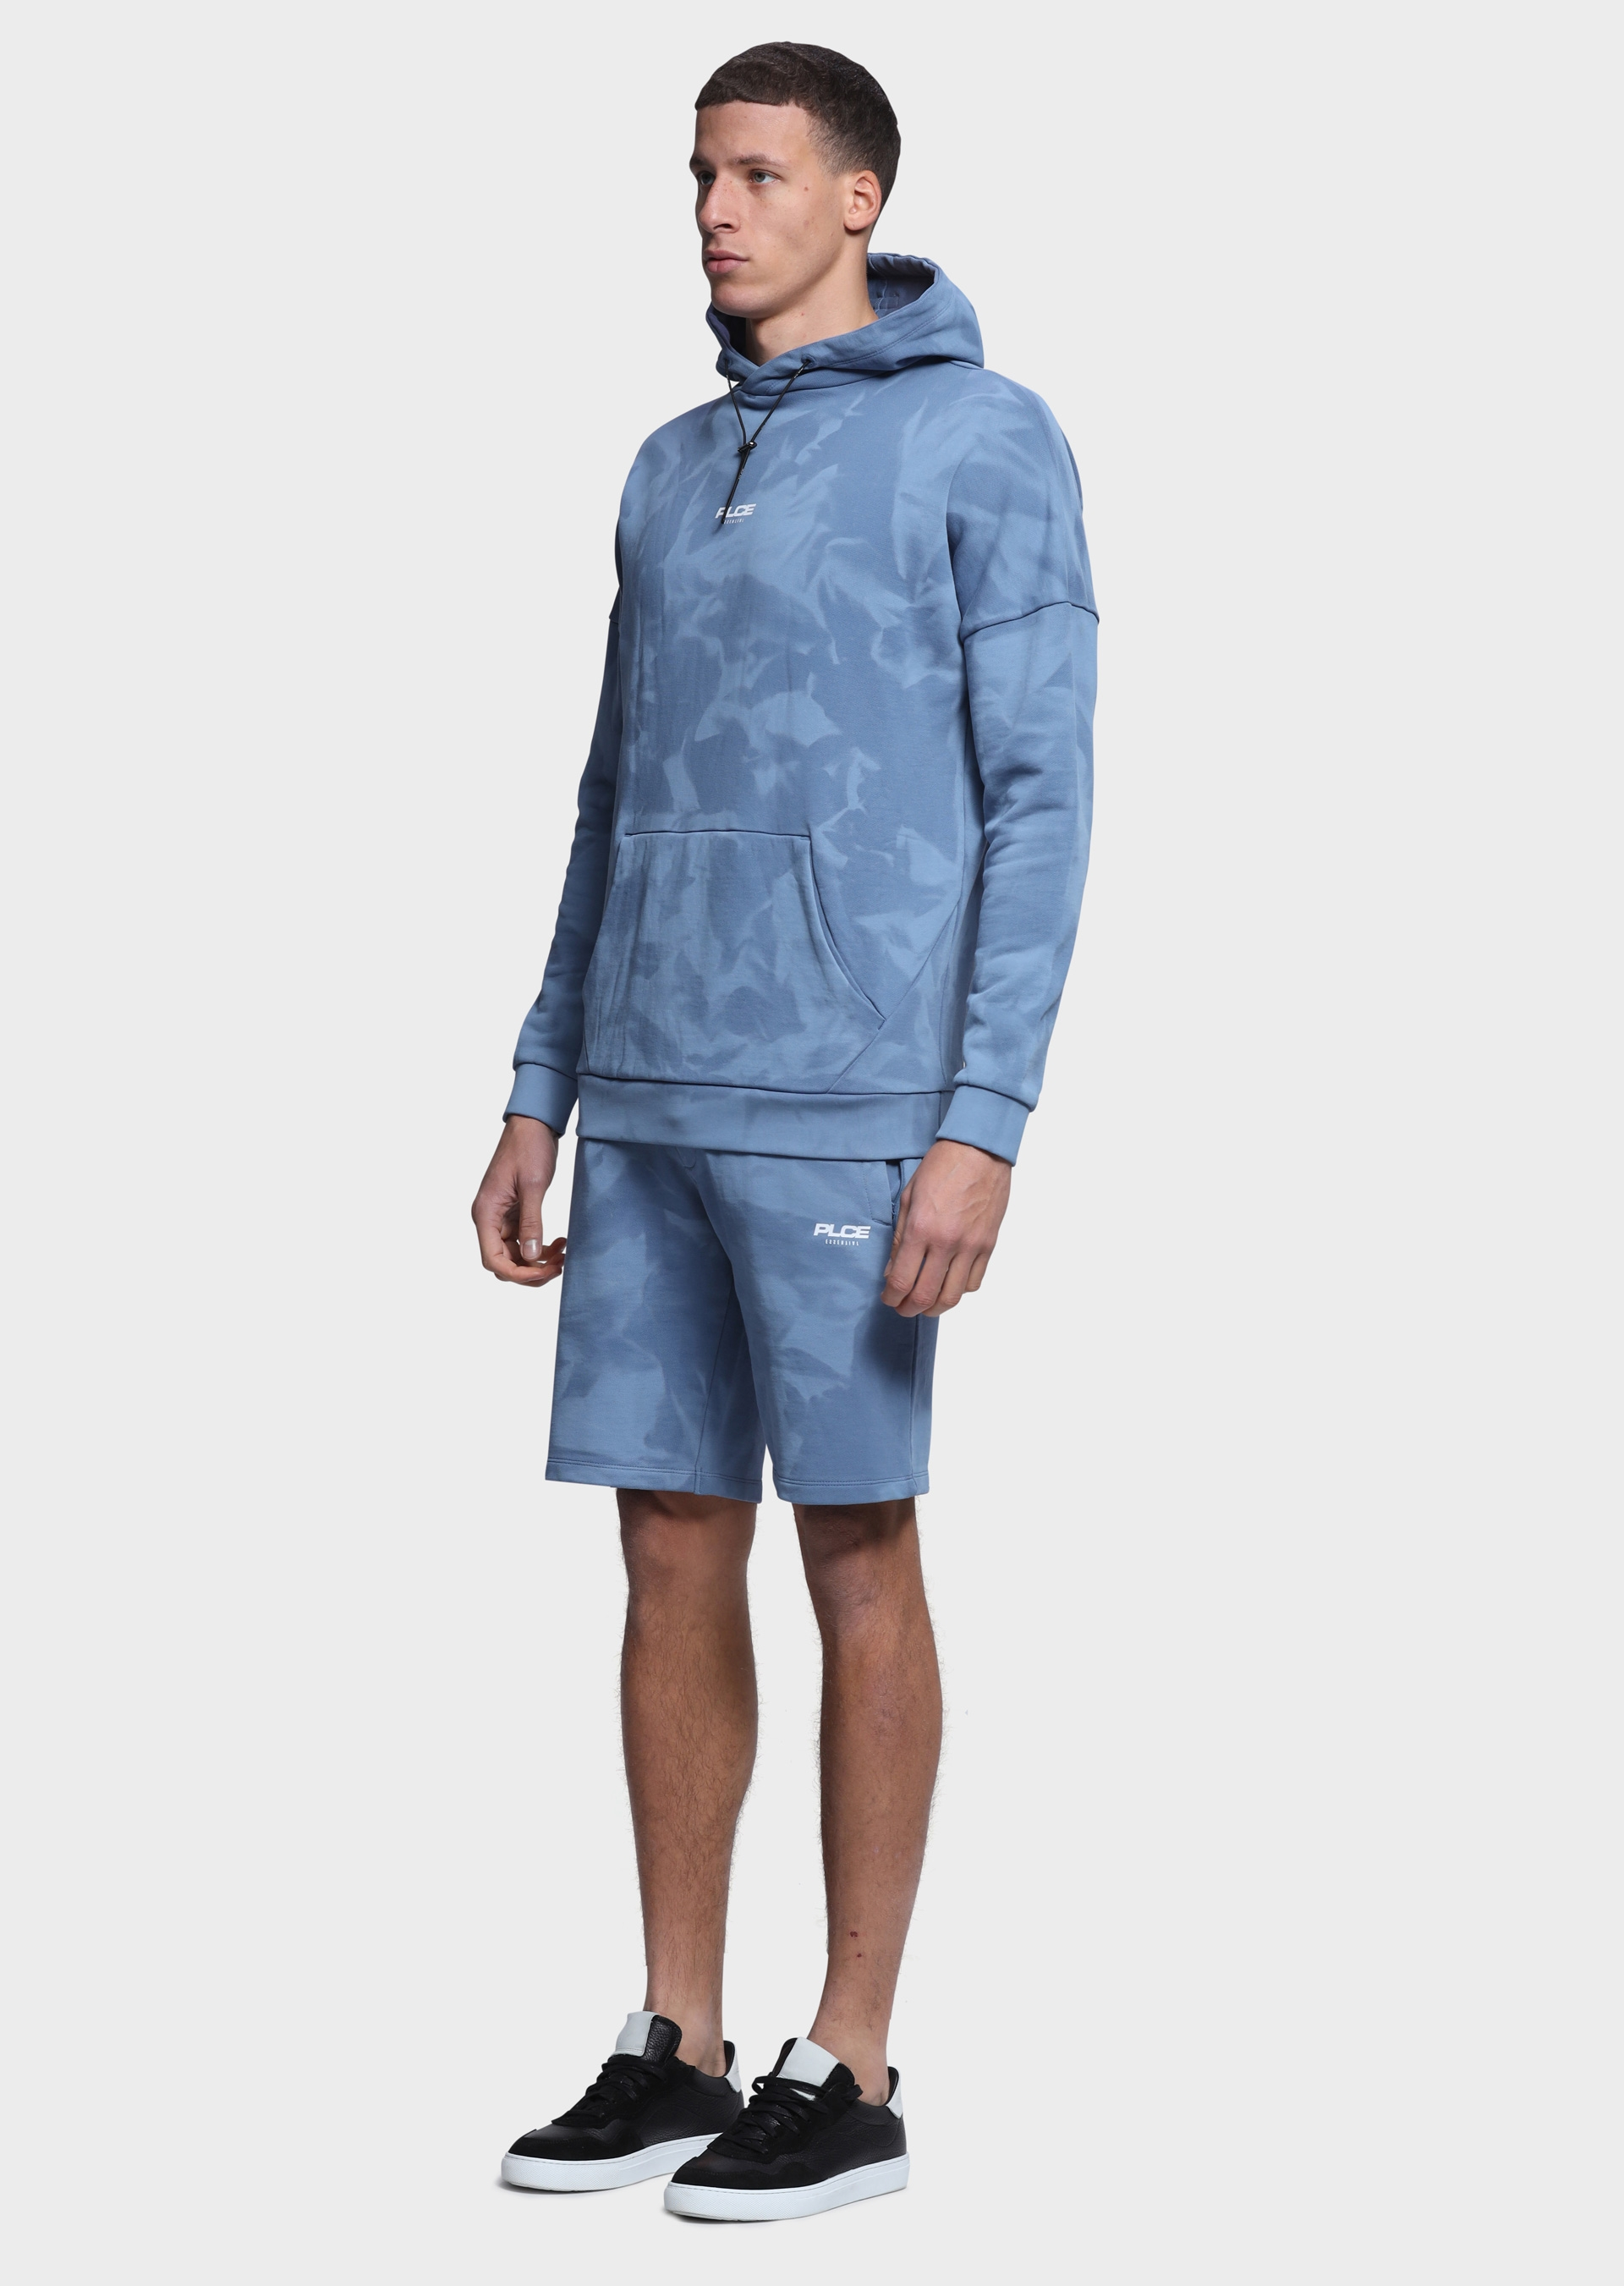 Stand Petrol Blue Shorts second_image